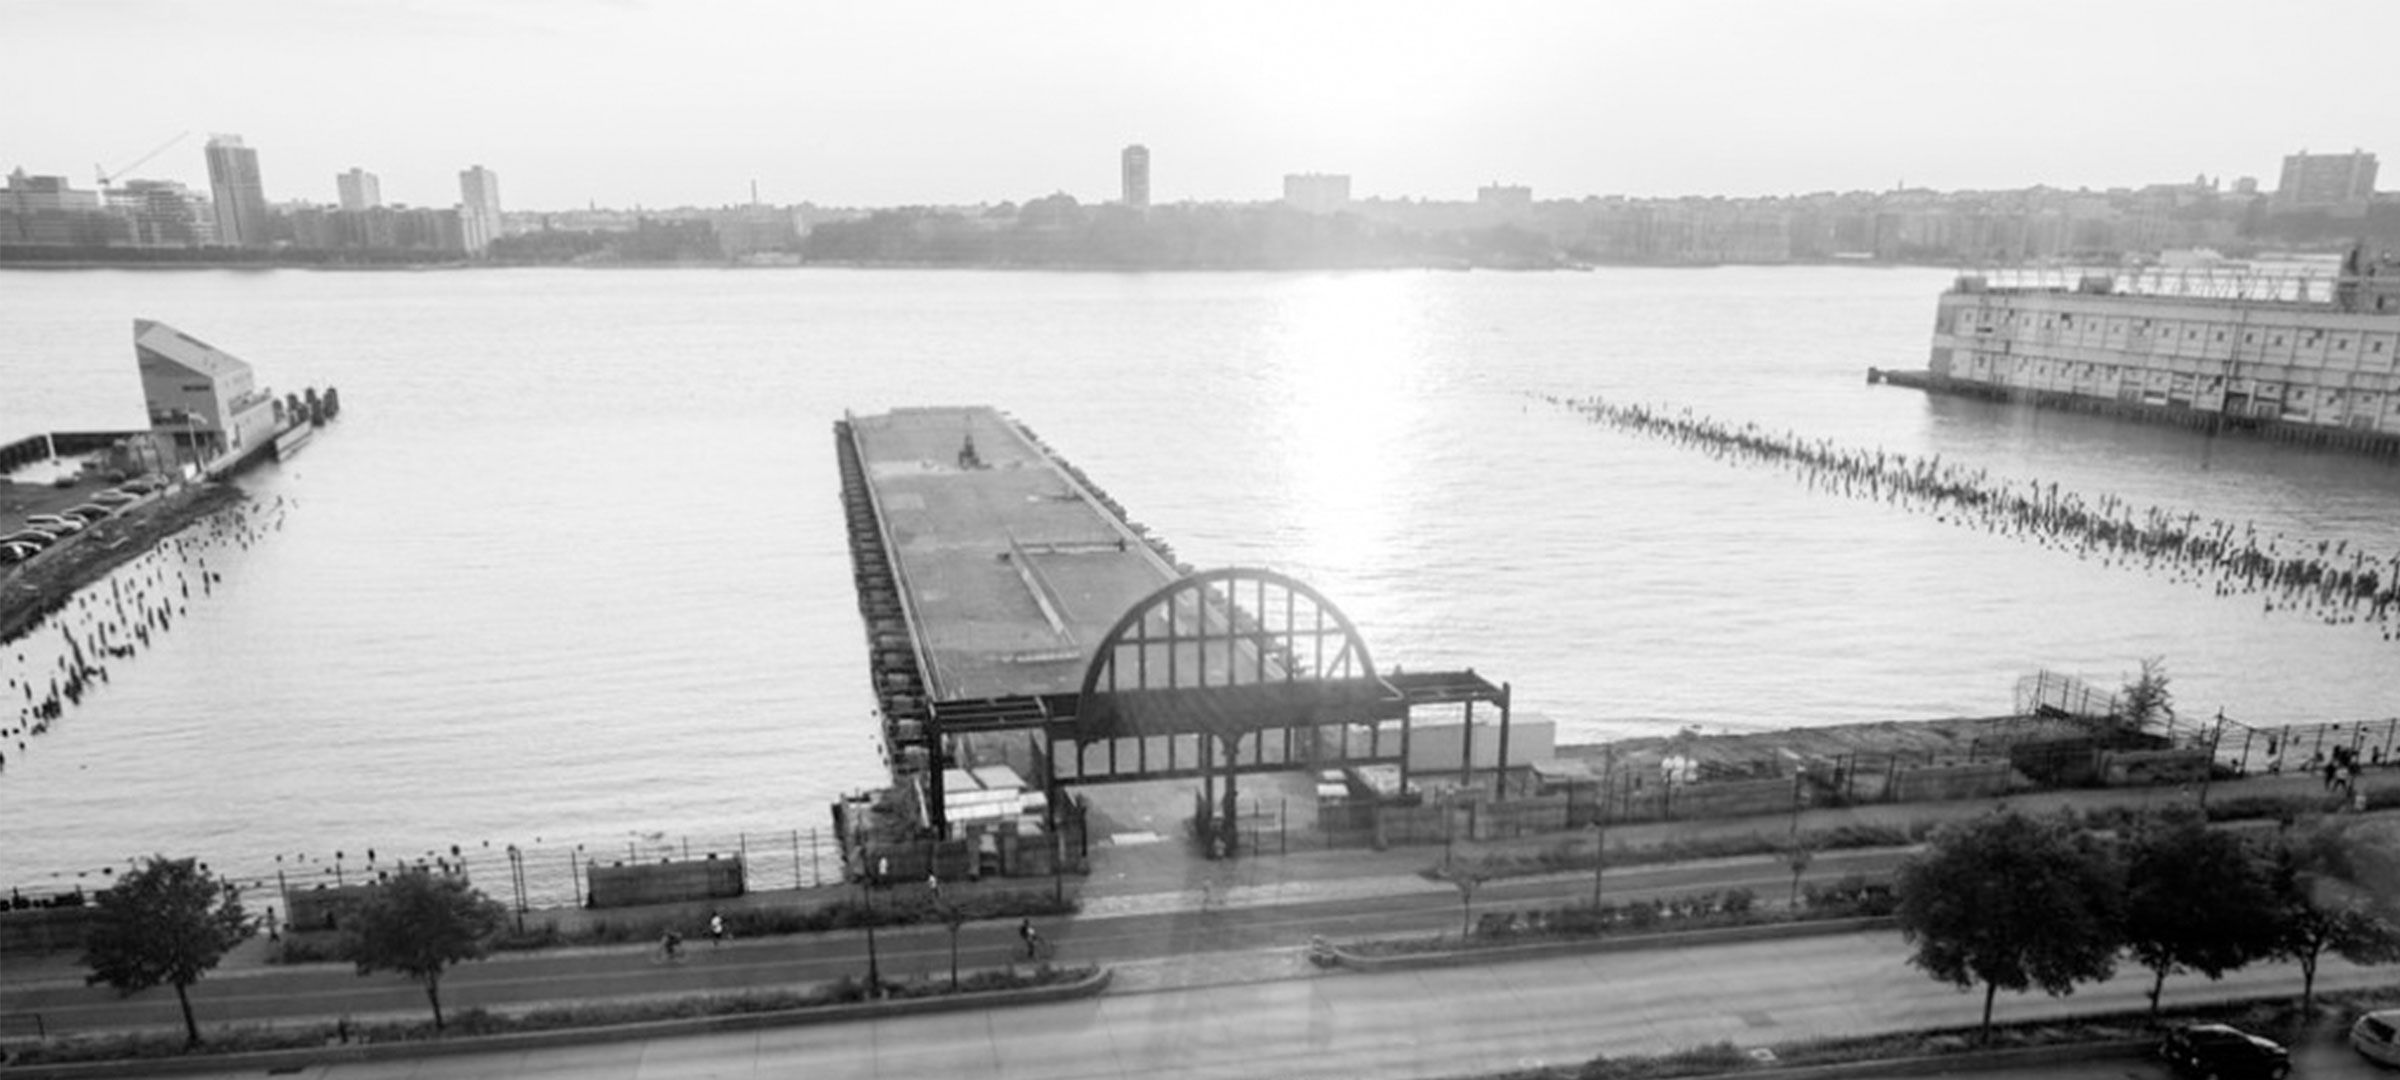 Black and white photo of the Cunard White Start Lines arch and Pier 54 from above